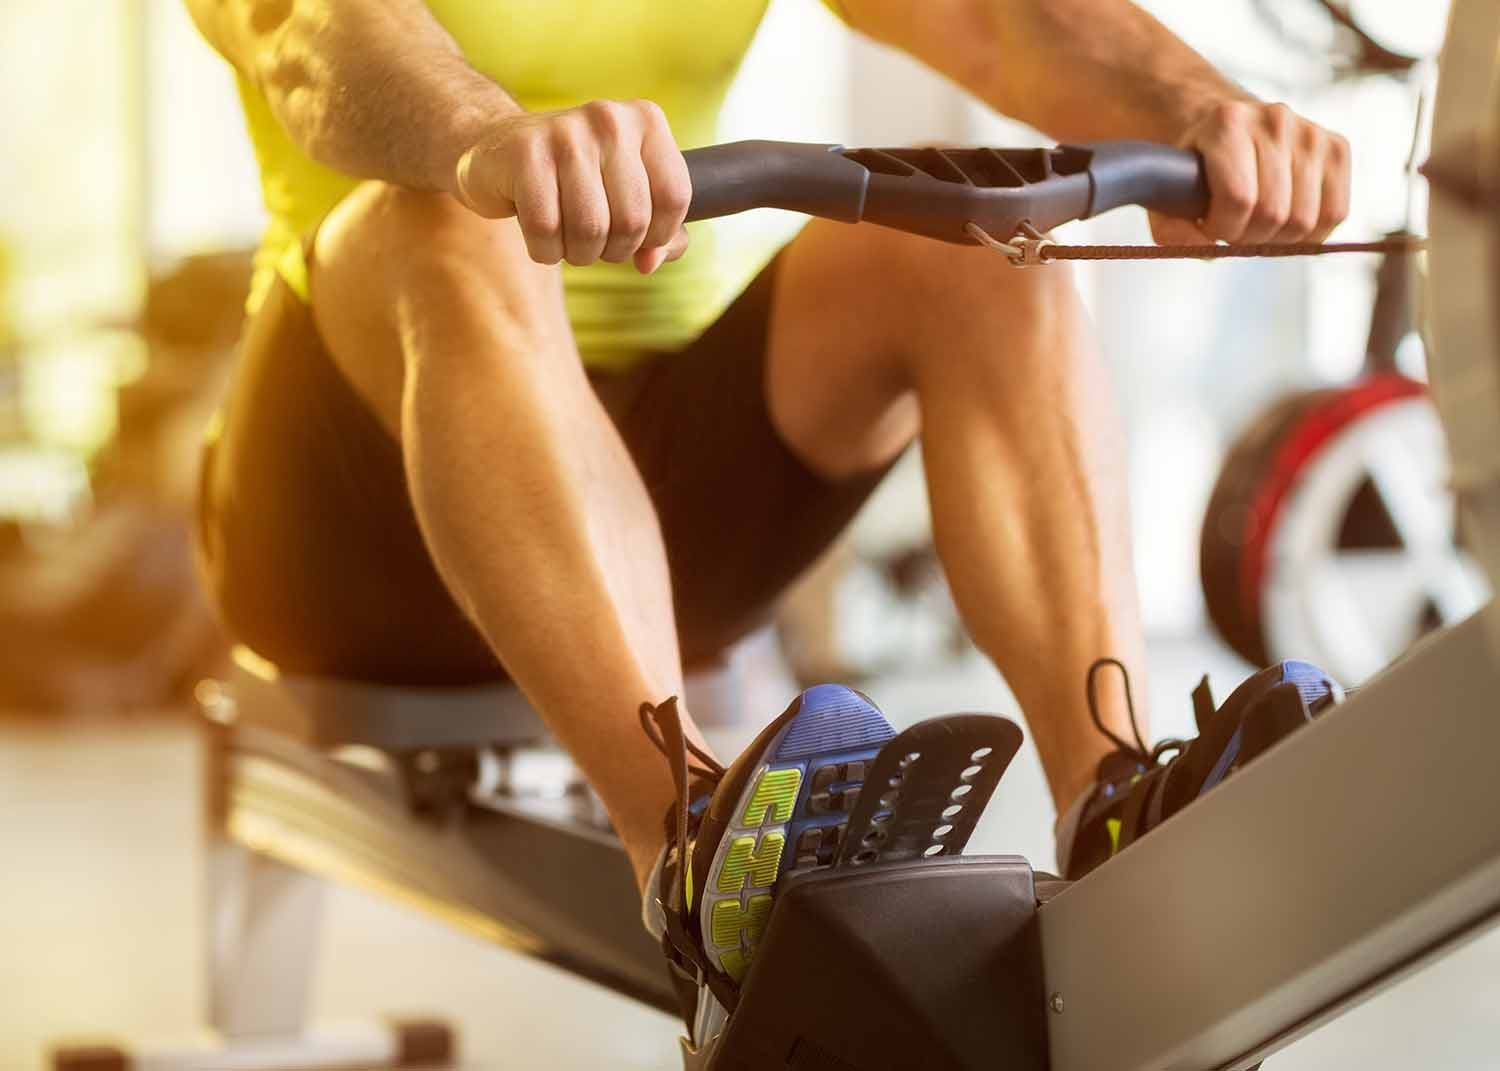 Envisagym Personal Training Gym Ranelagh Dublin From €139 Per Month Our Unique Approach Man Rowing